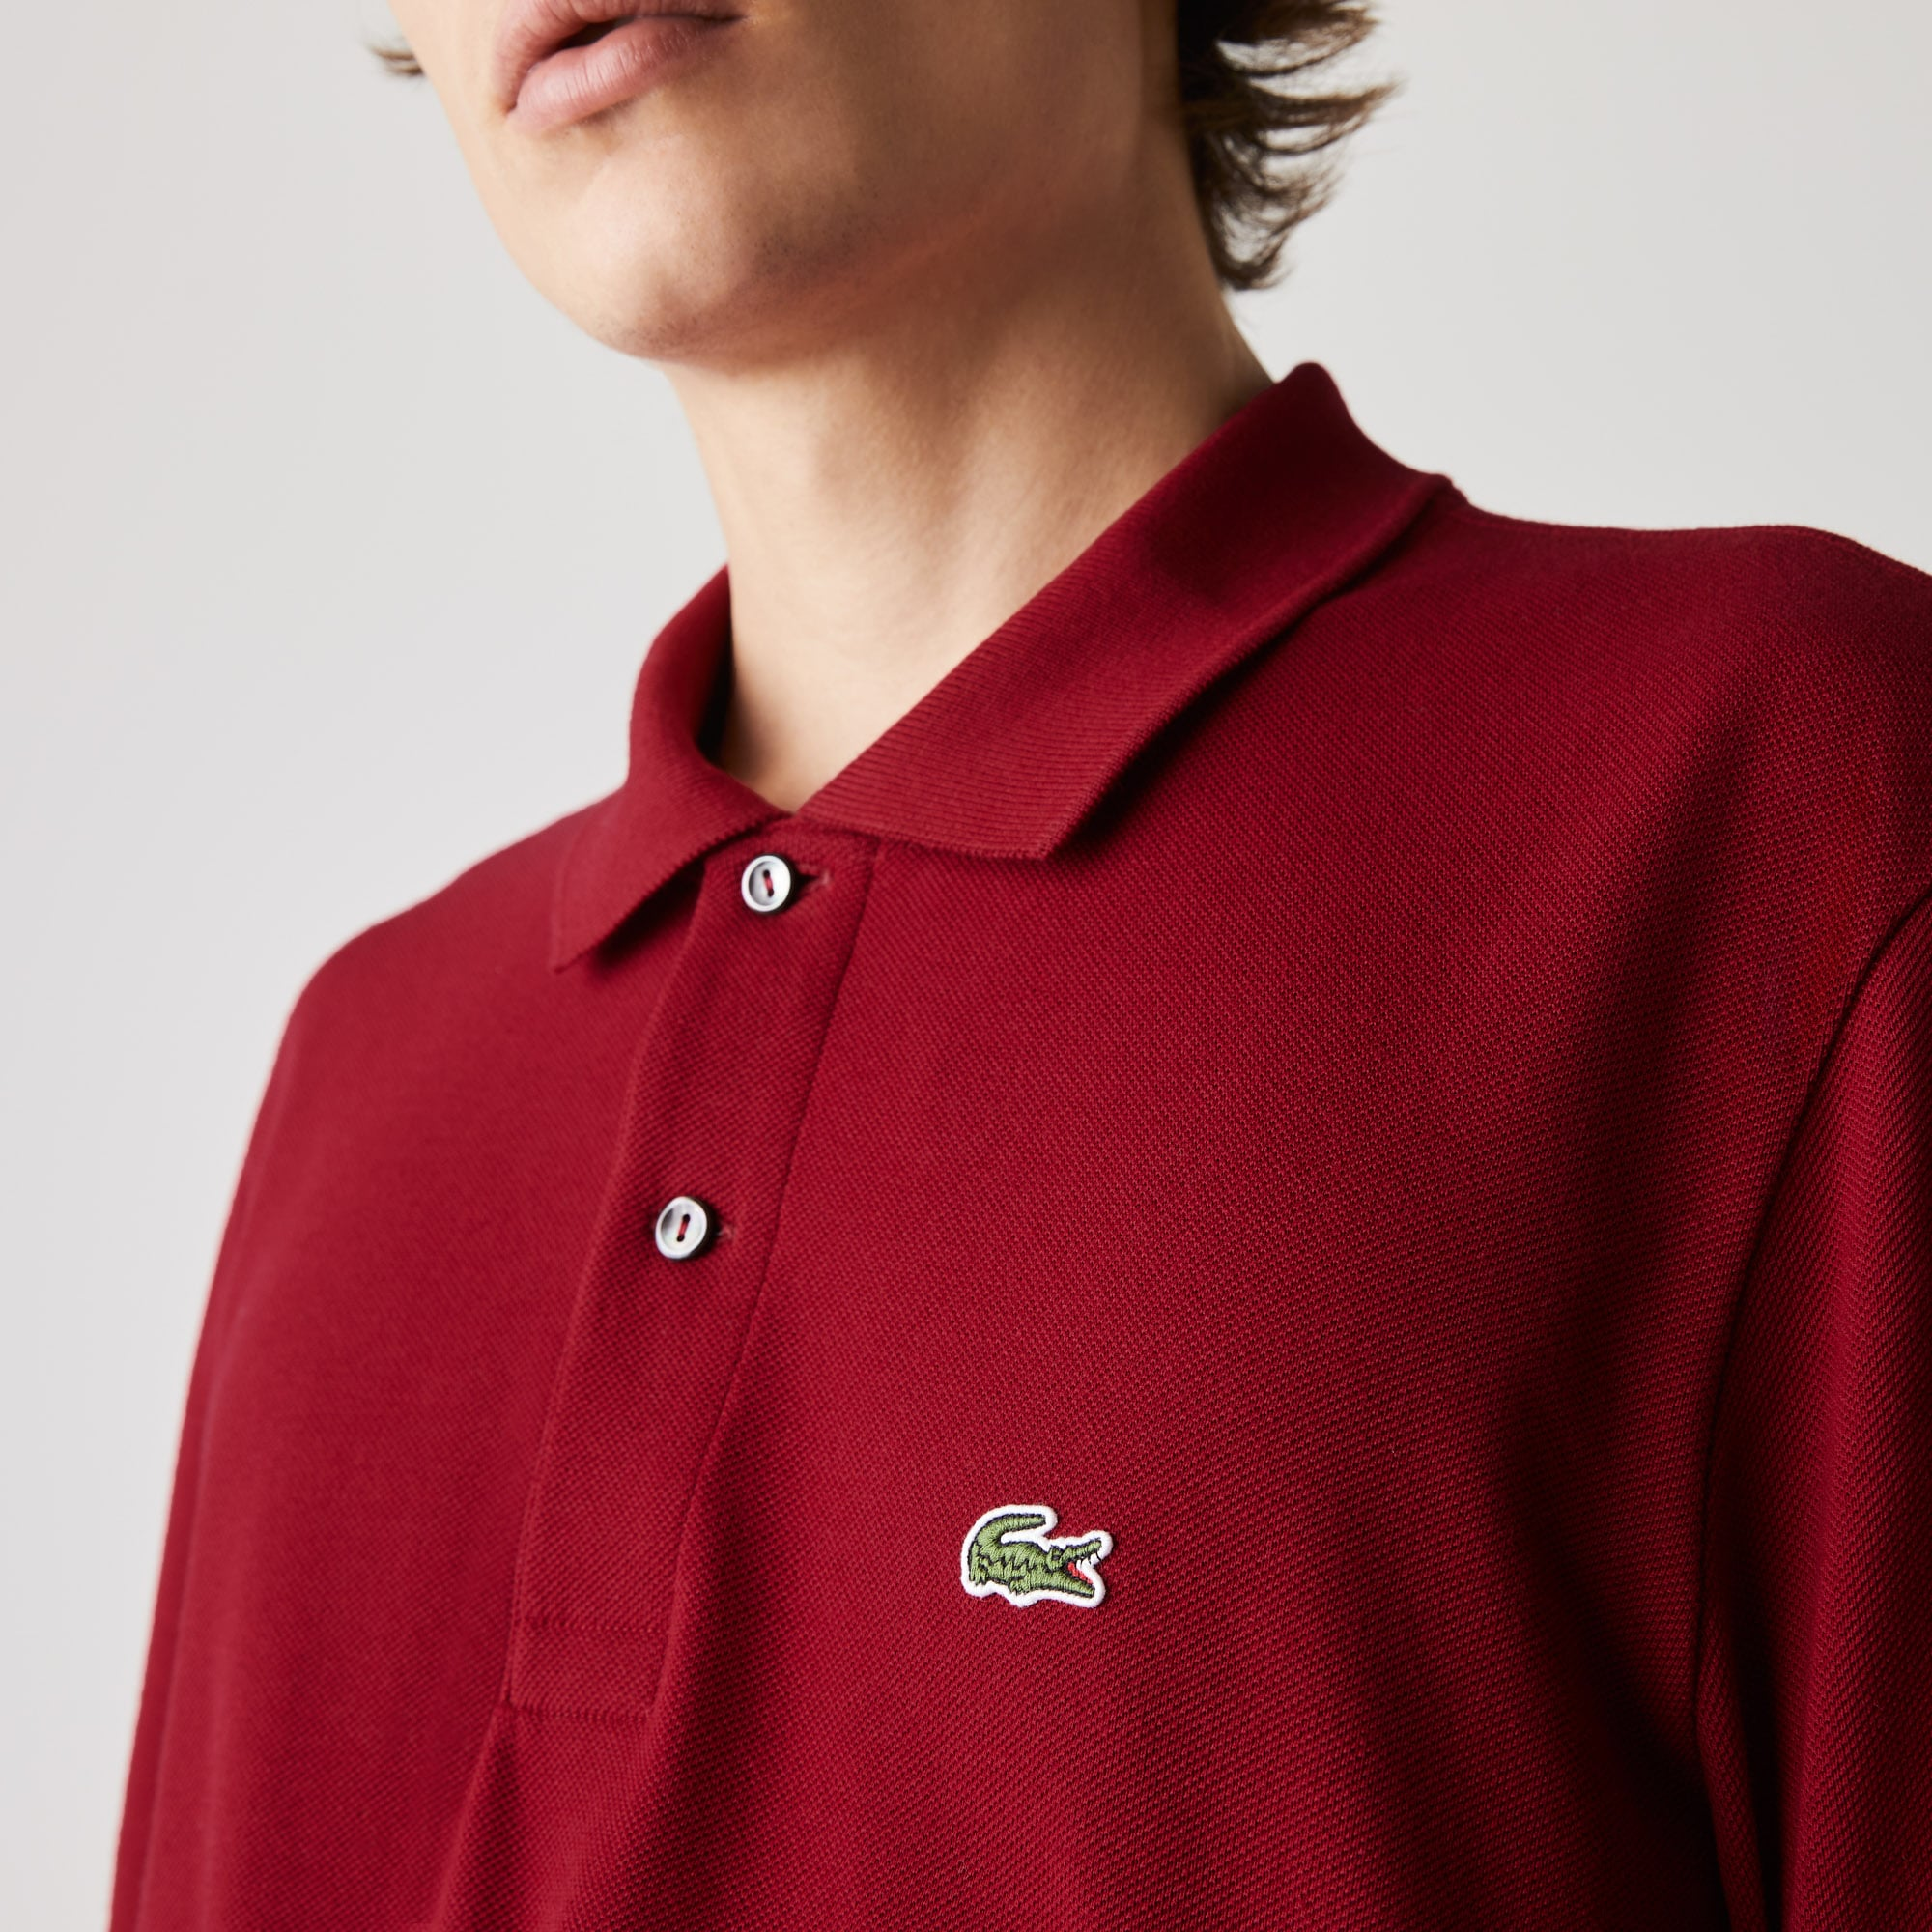 96cd2101 Long-sleeve Lacoste Classic Fit L.12.12 Polo Shirt | LACOSTE